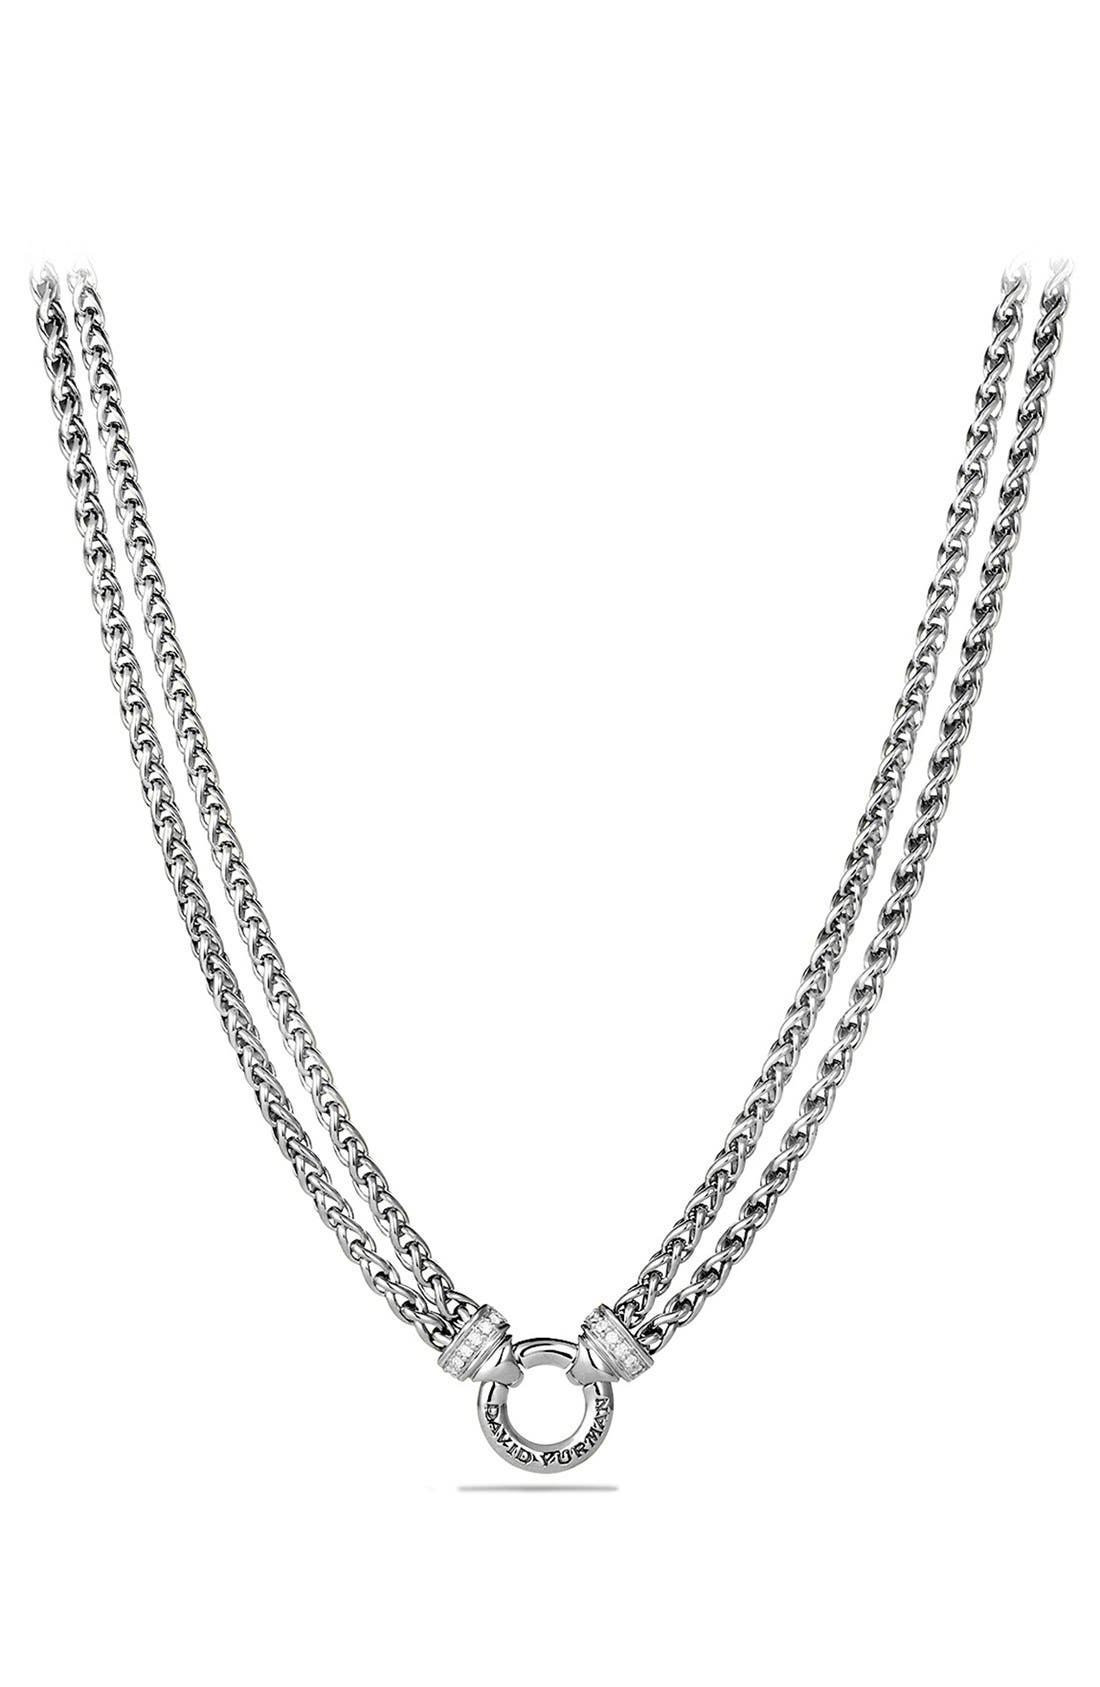 Main Image - David Yurman Double Wheat Chain Necklace with Gold